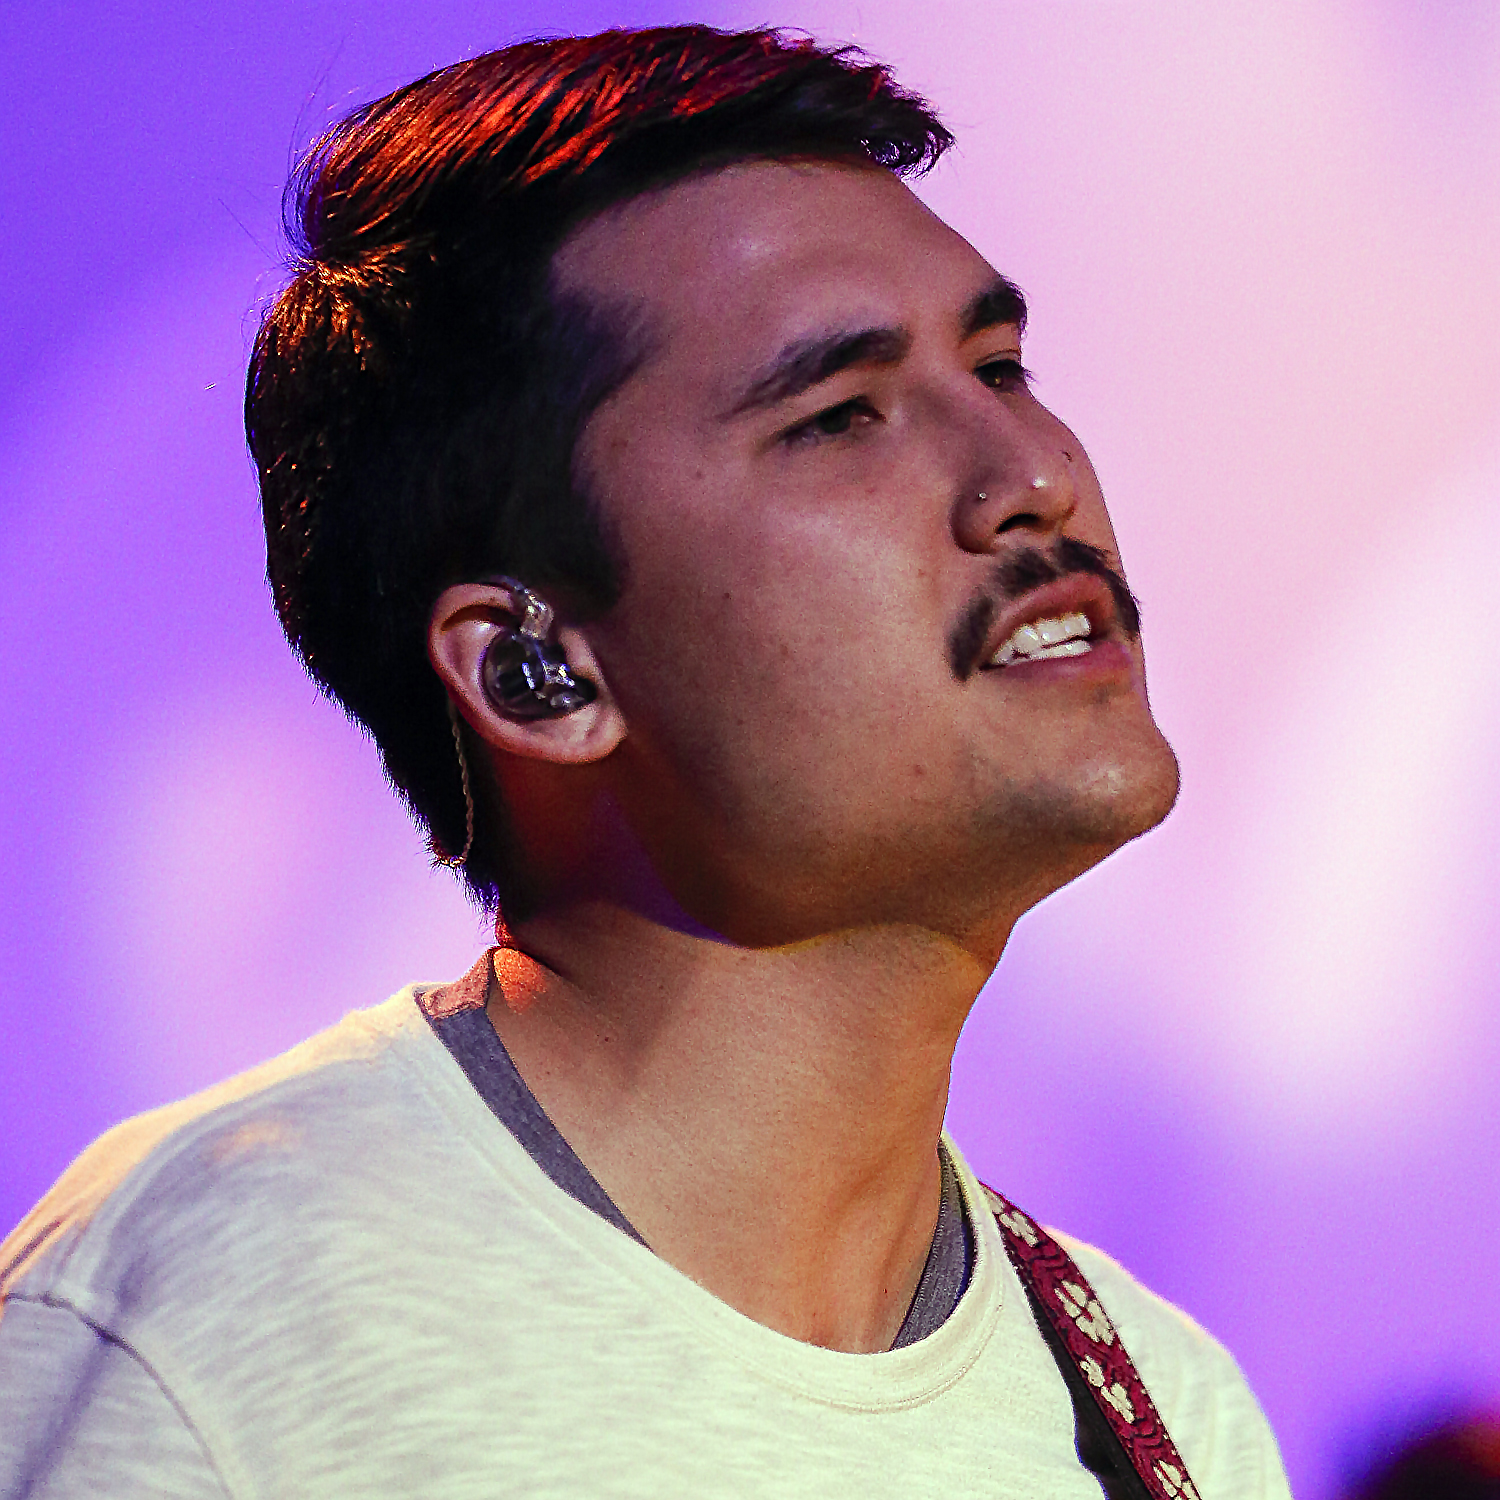 TOBY KIM, who played electric guitar in our HIM 2017 worship band, has superpowers. He's played back-up for pop boy-band  One Direction  as well as with Christian songwriter and worship leader   Phil Wickham.  And we got to worship with Toby LIVE for three days! #RealTime